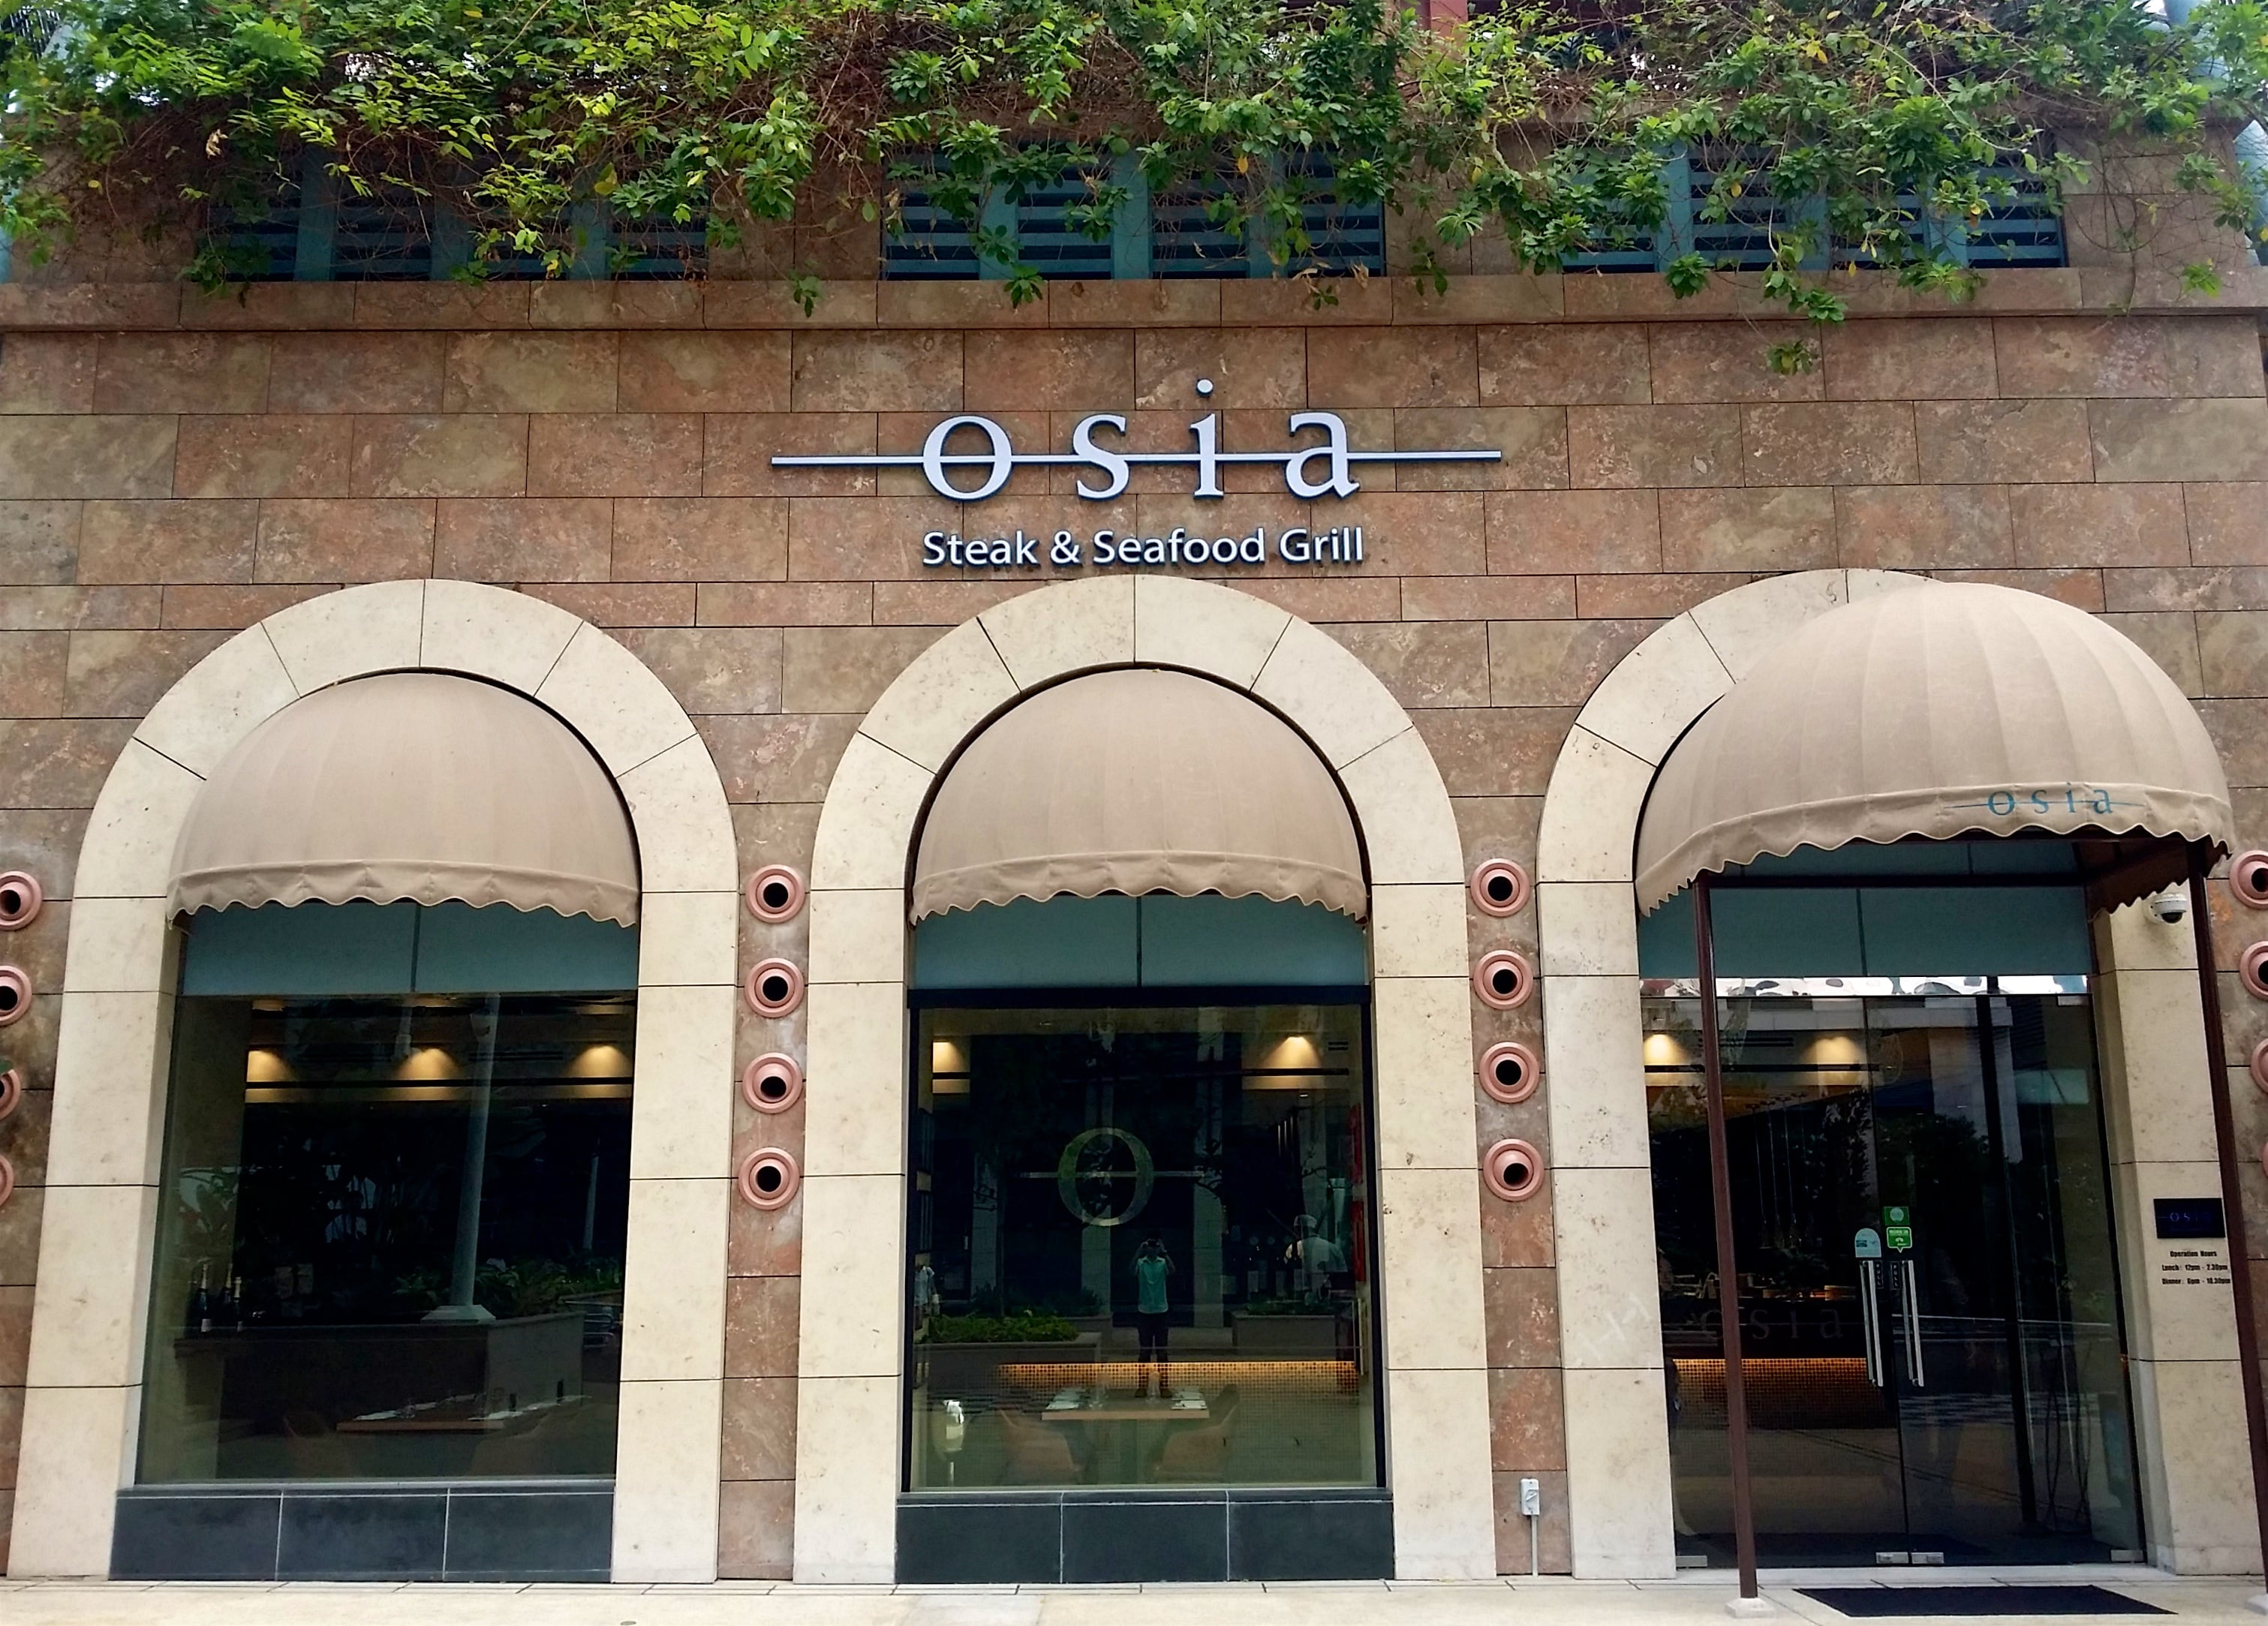 osia-steak-and-seafood-grill-min-1